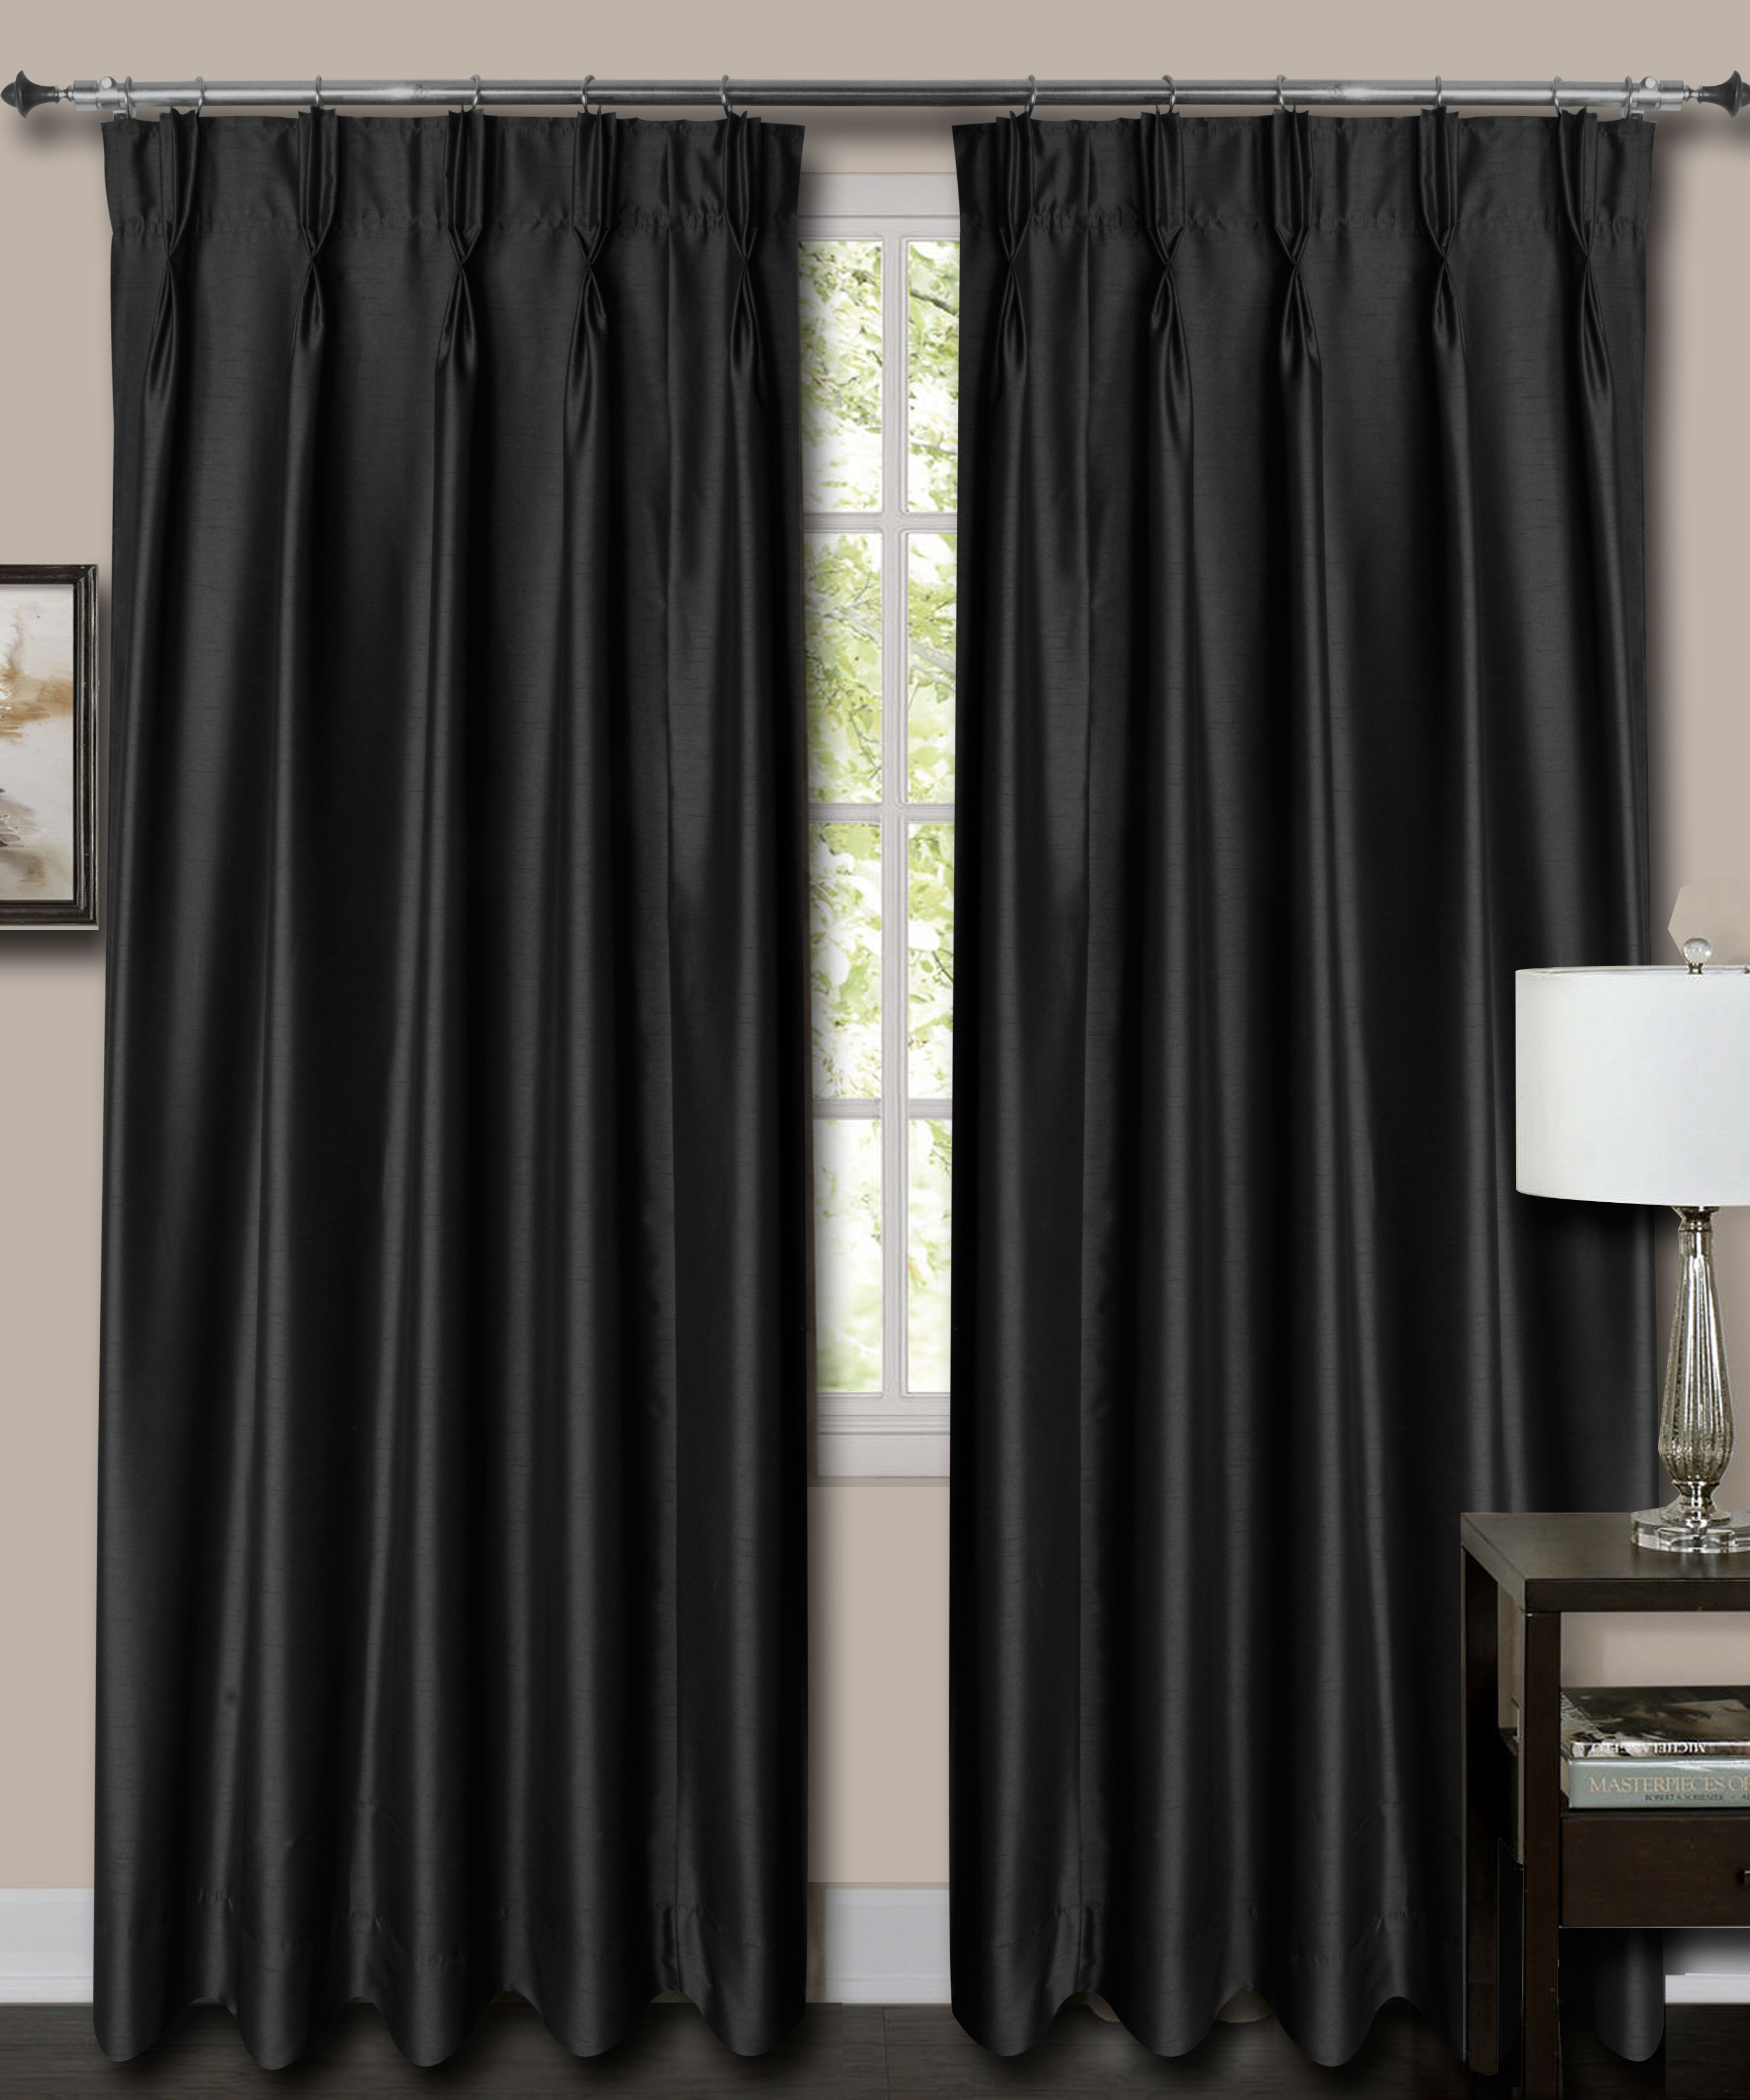 """French Pleat Top Black Faux Silk Dupioni Curtains. (65"""" Wide, 15 Feet Long, Blackout Lining)"""